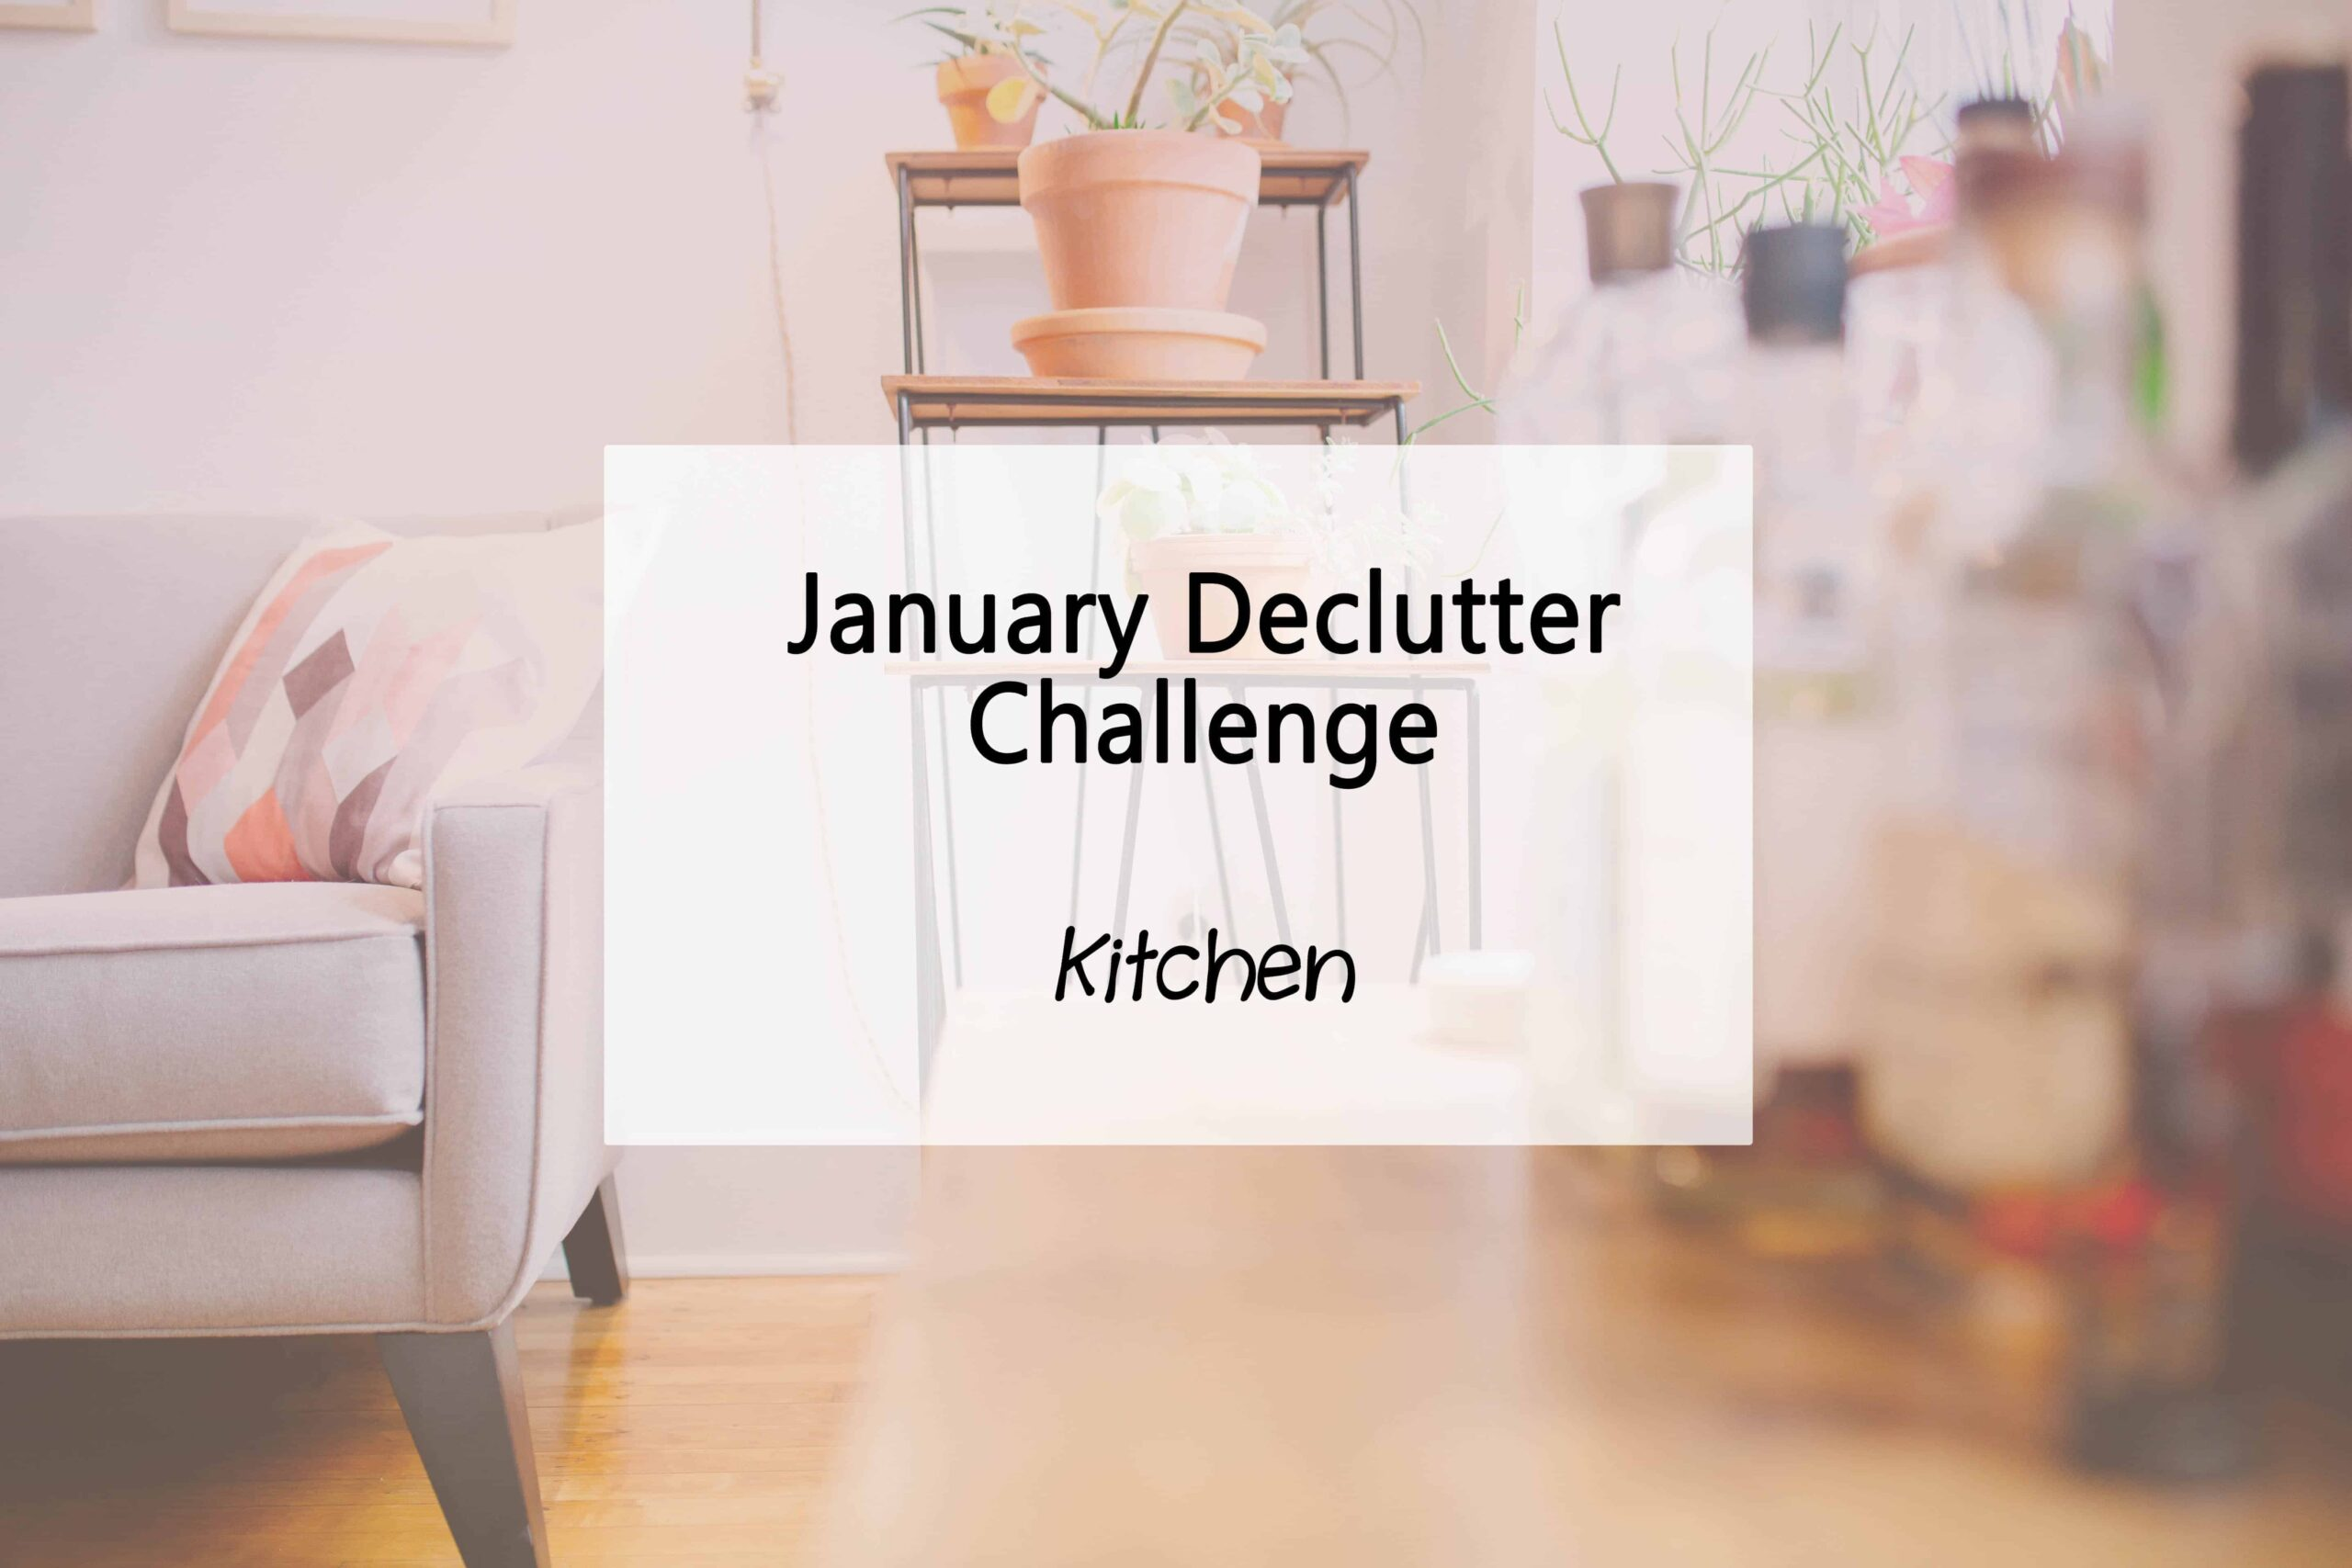 Declutter kitchen challenge